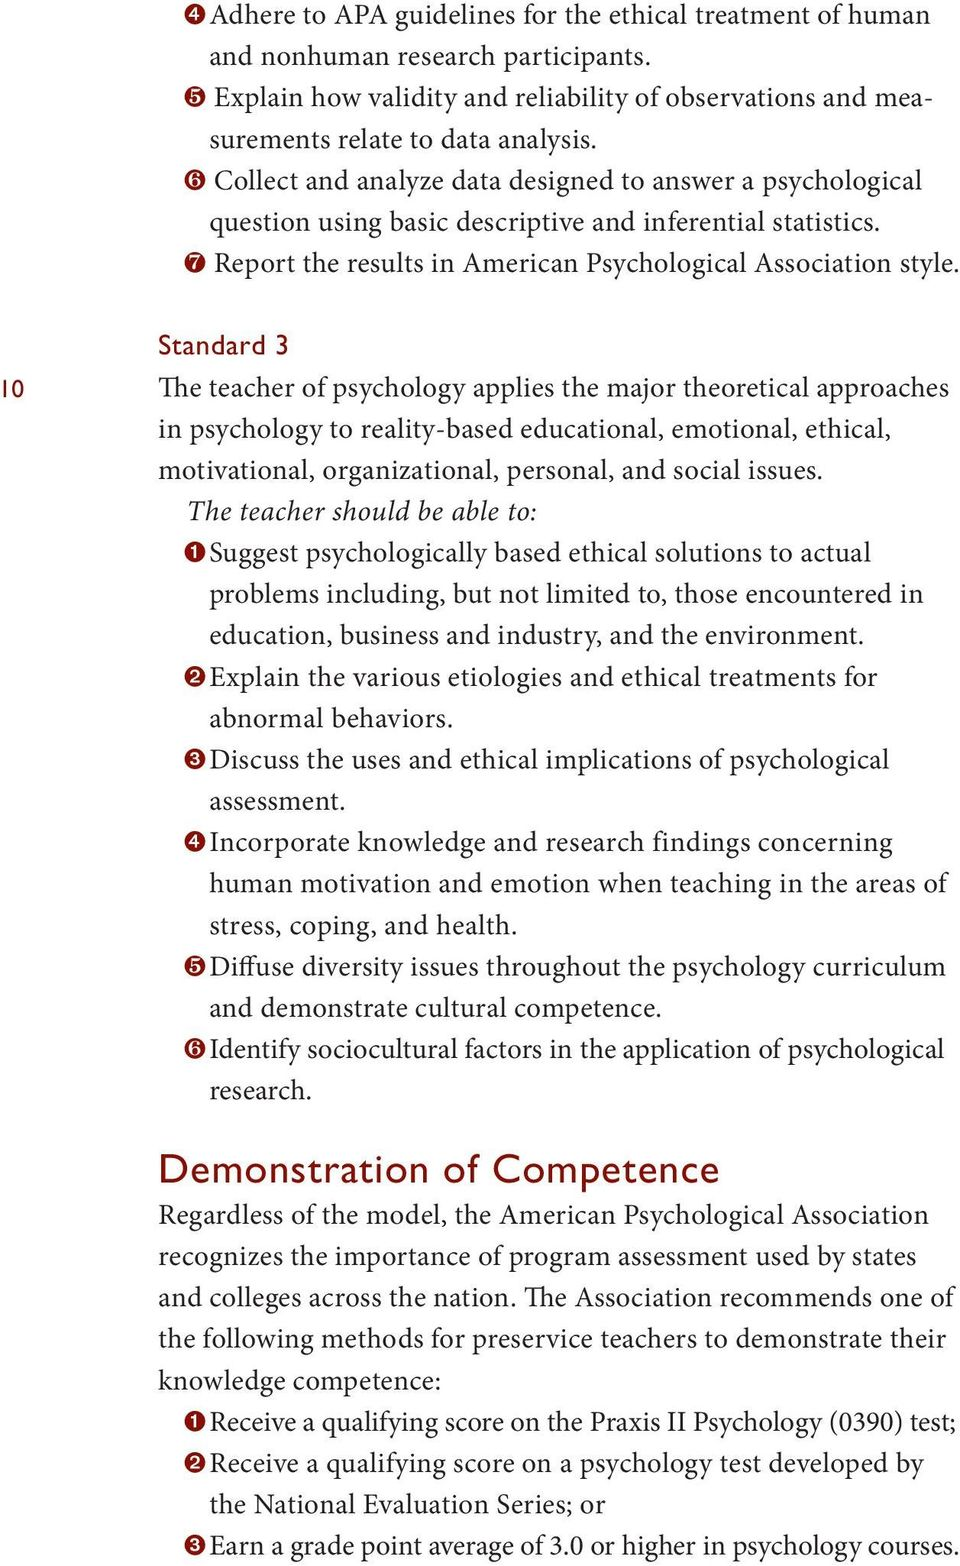 10 Standard 3 The teacher of psychology applies the major theoretical approaches in psychology to reality-based educational, emotional, ethical, motivational, organizational, personal, and social